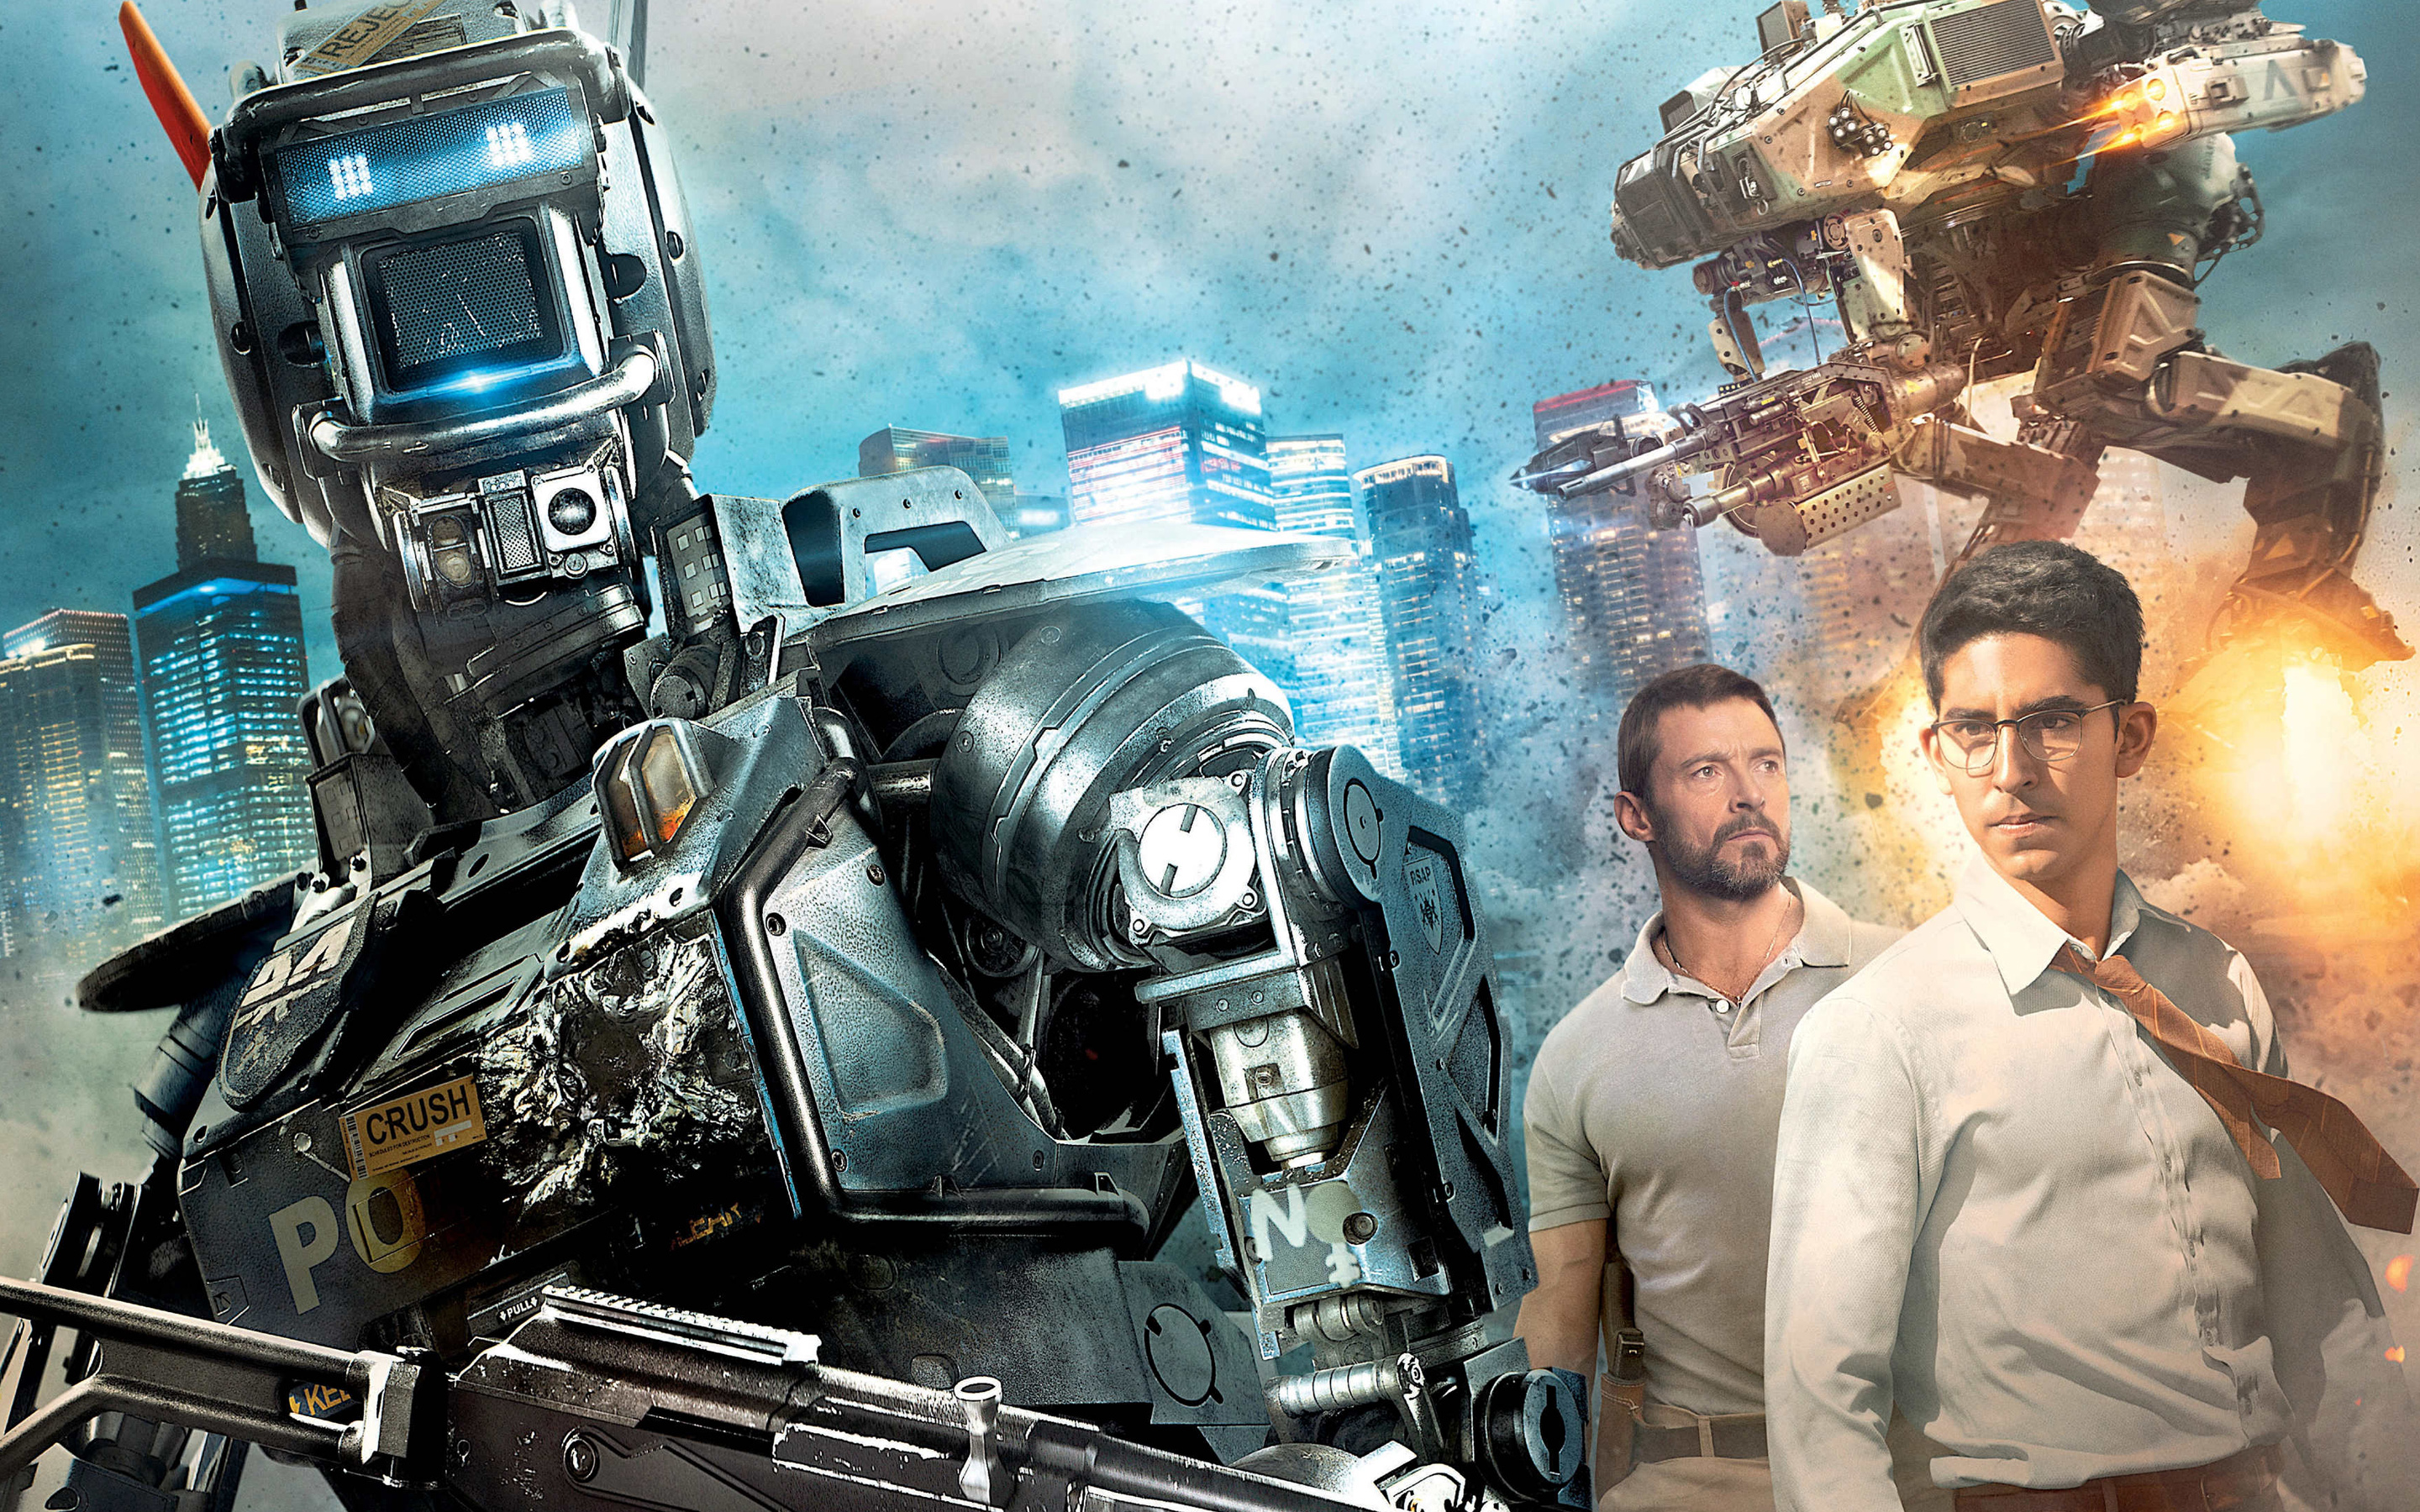 Hugh Jackman Images Chappie Movie Hd Wallpaper And Background Photos